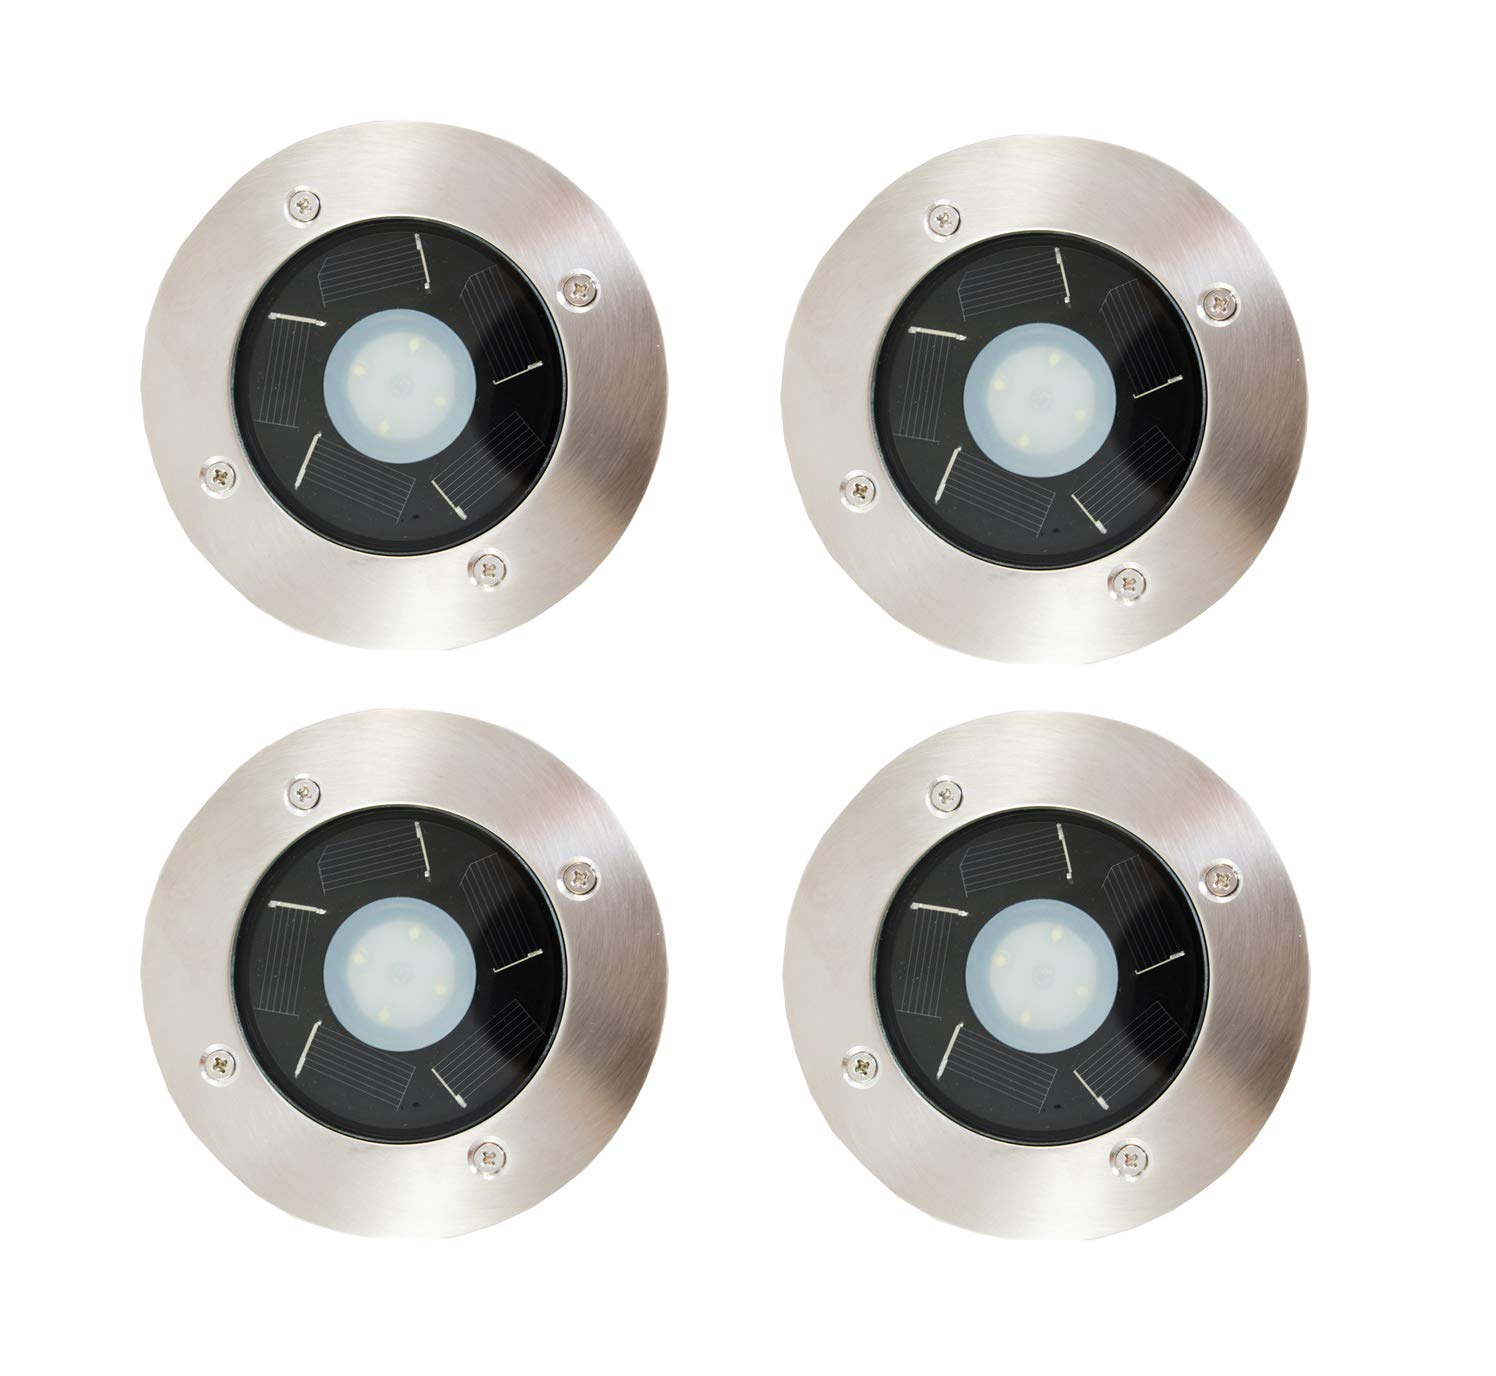 4-Pack Solar Power Outdoor Stainless Steel 4 LED Step / Deck Light by FORCETEK